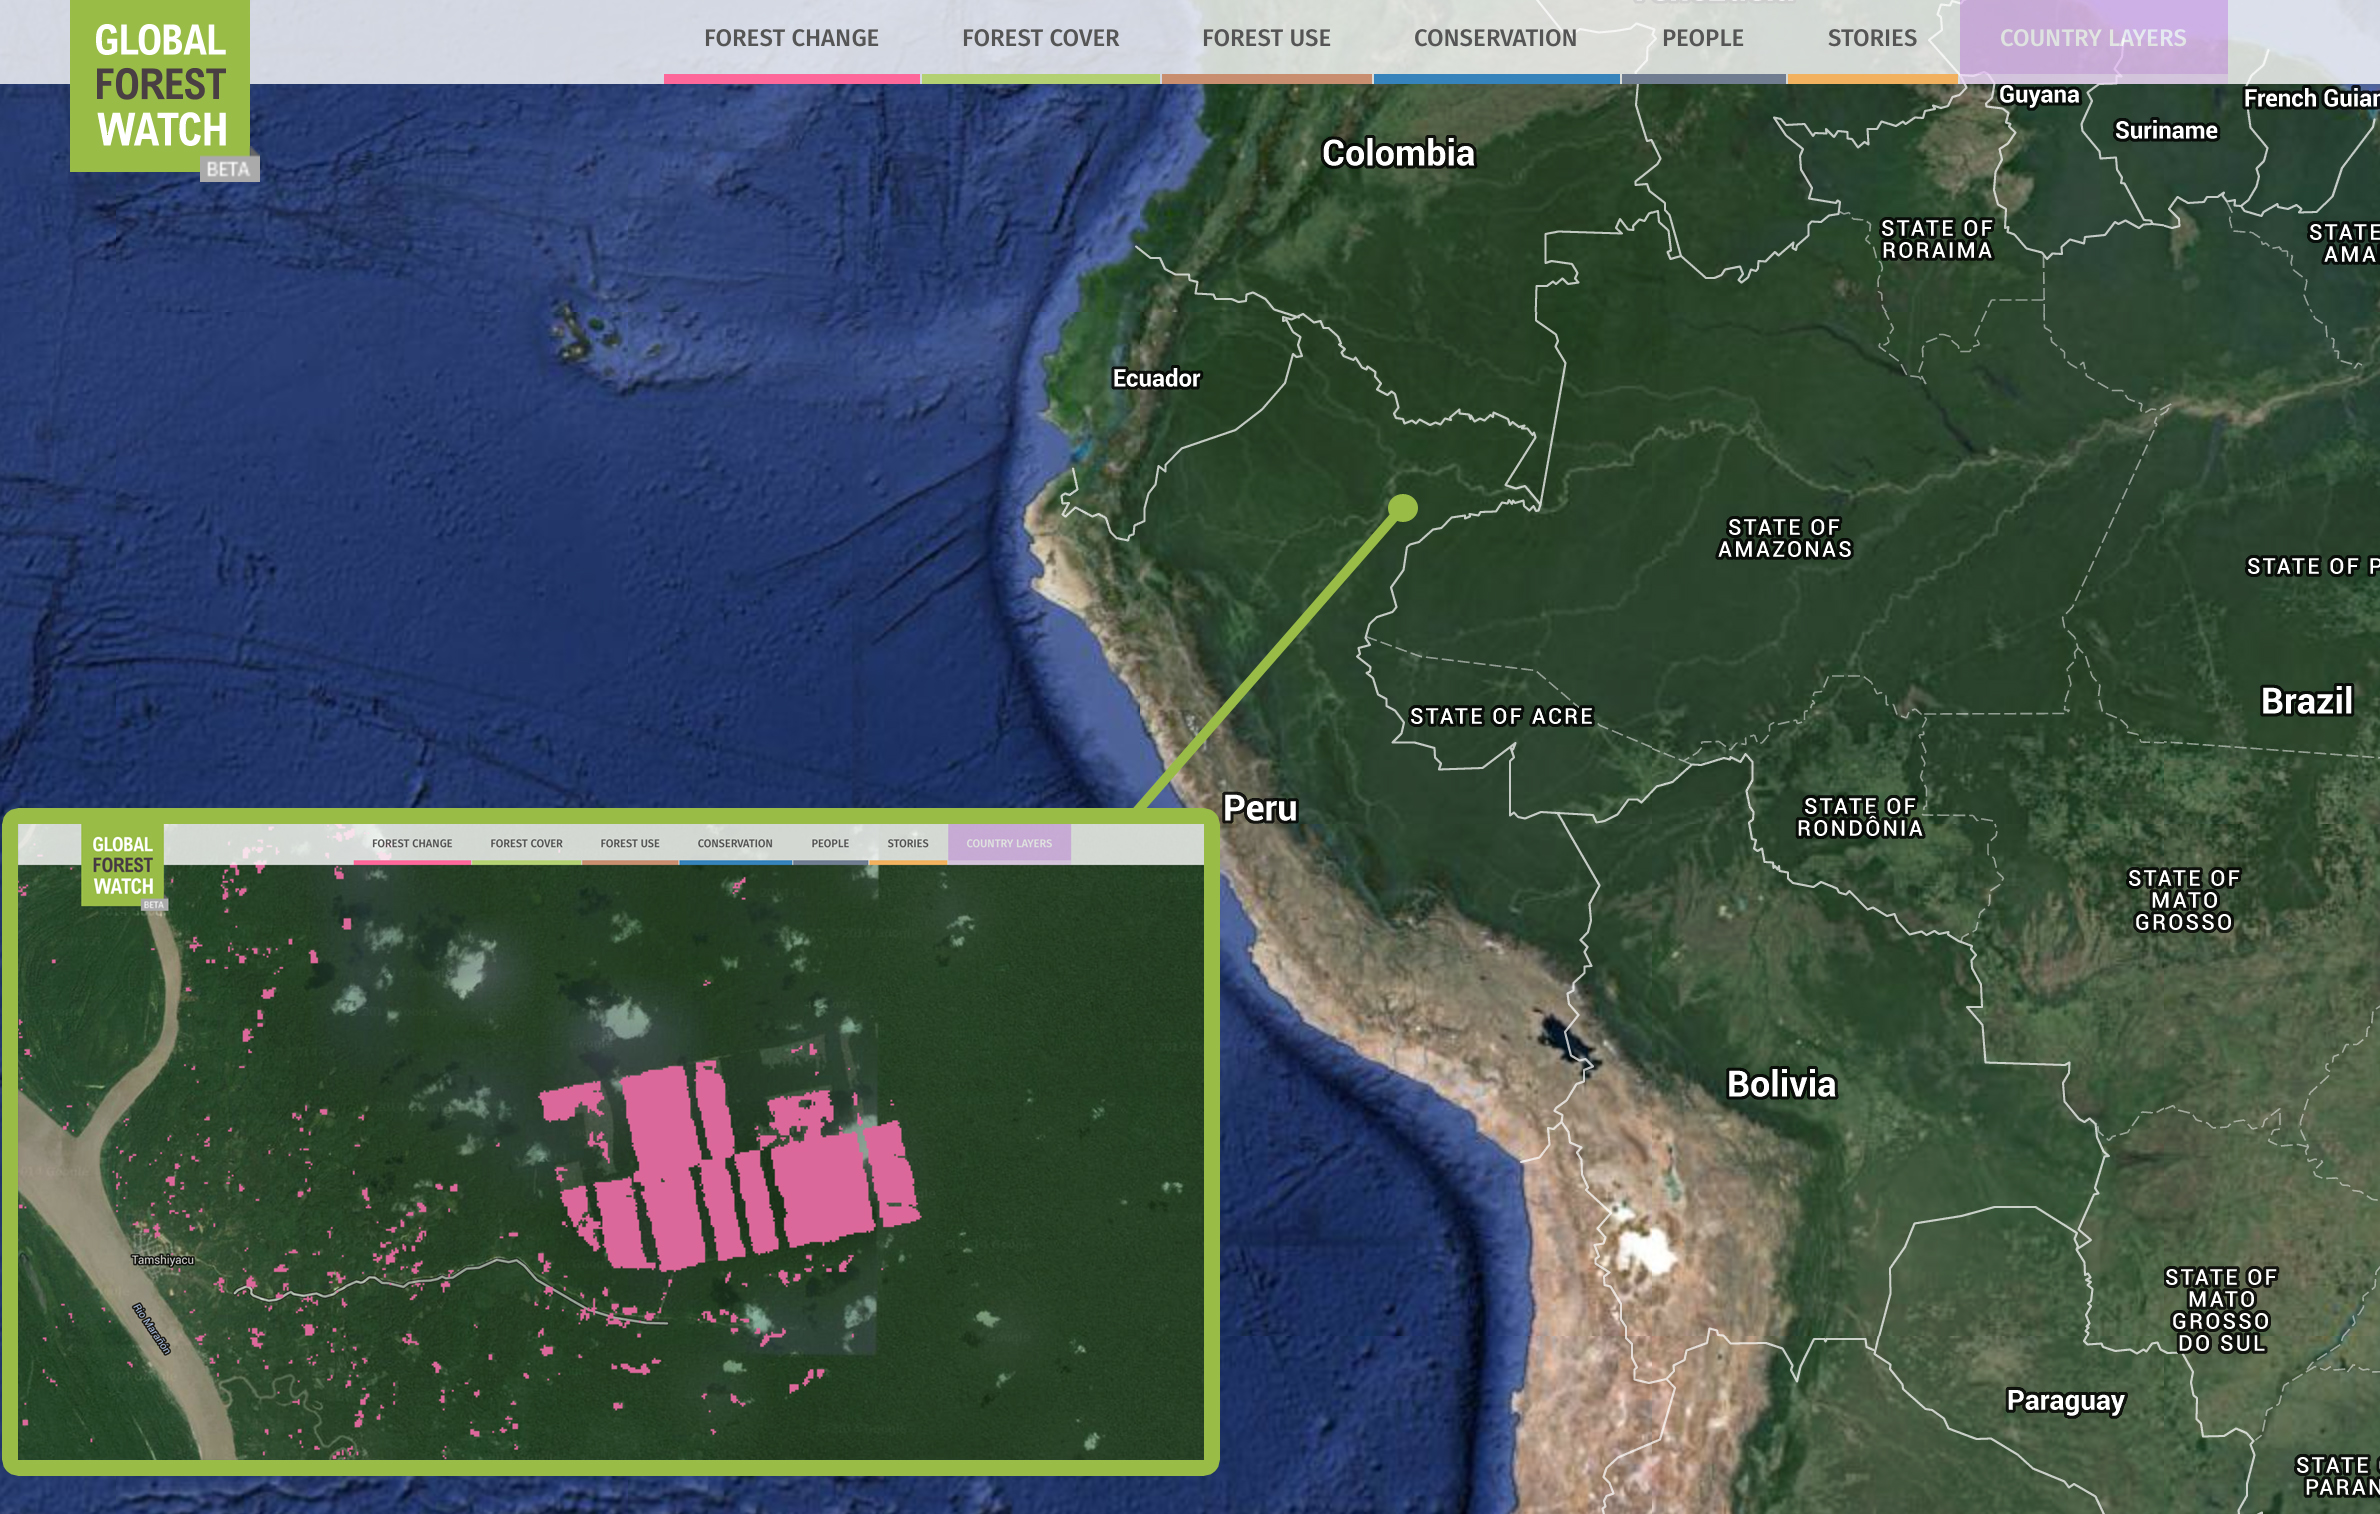 <p>United Cacao cleared 2,000 hectares (5,000 acres) of land near Iquitos, Peru, the world's largest city inaccessible by road. Graphic by Global Forest Watch.</p>